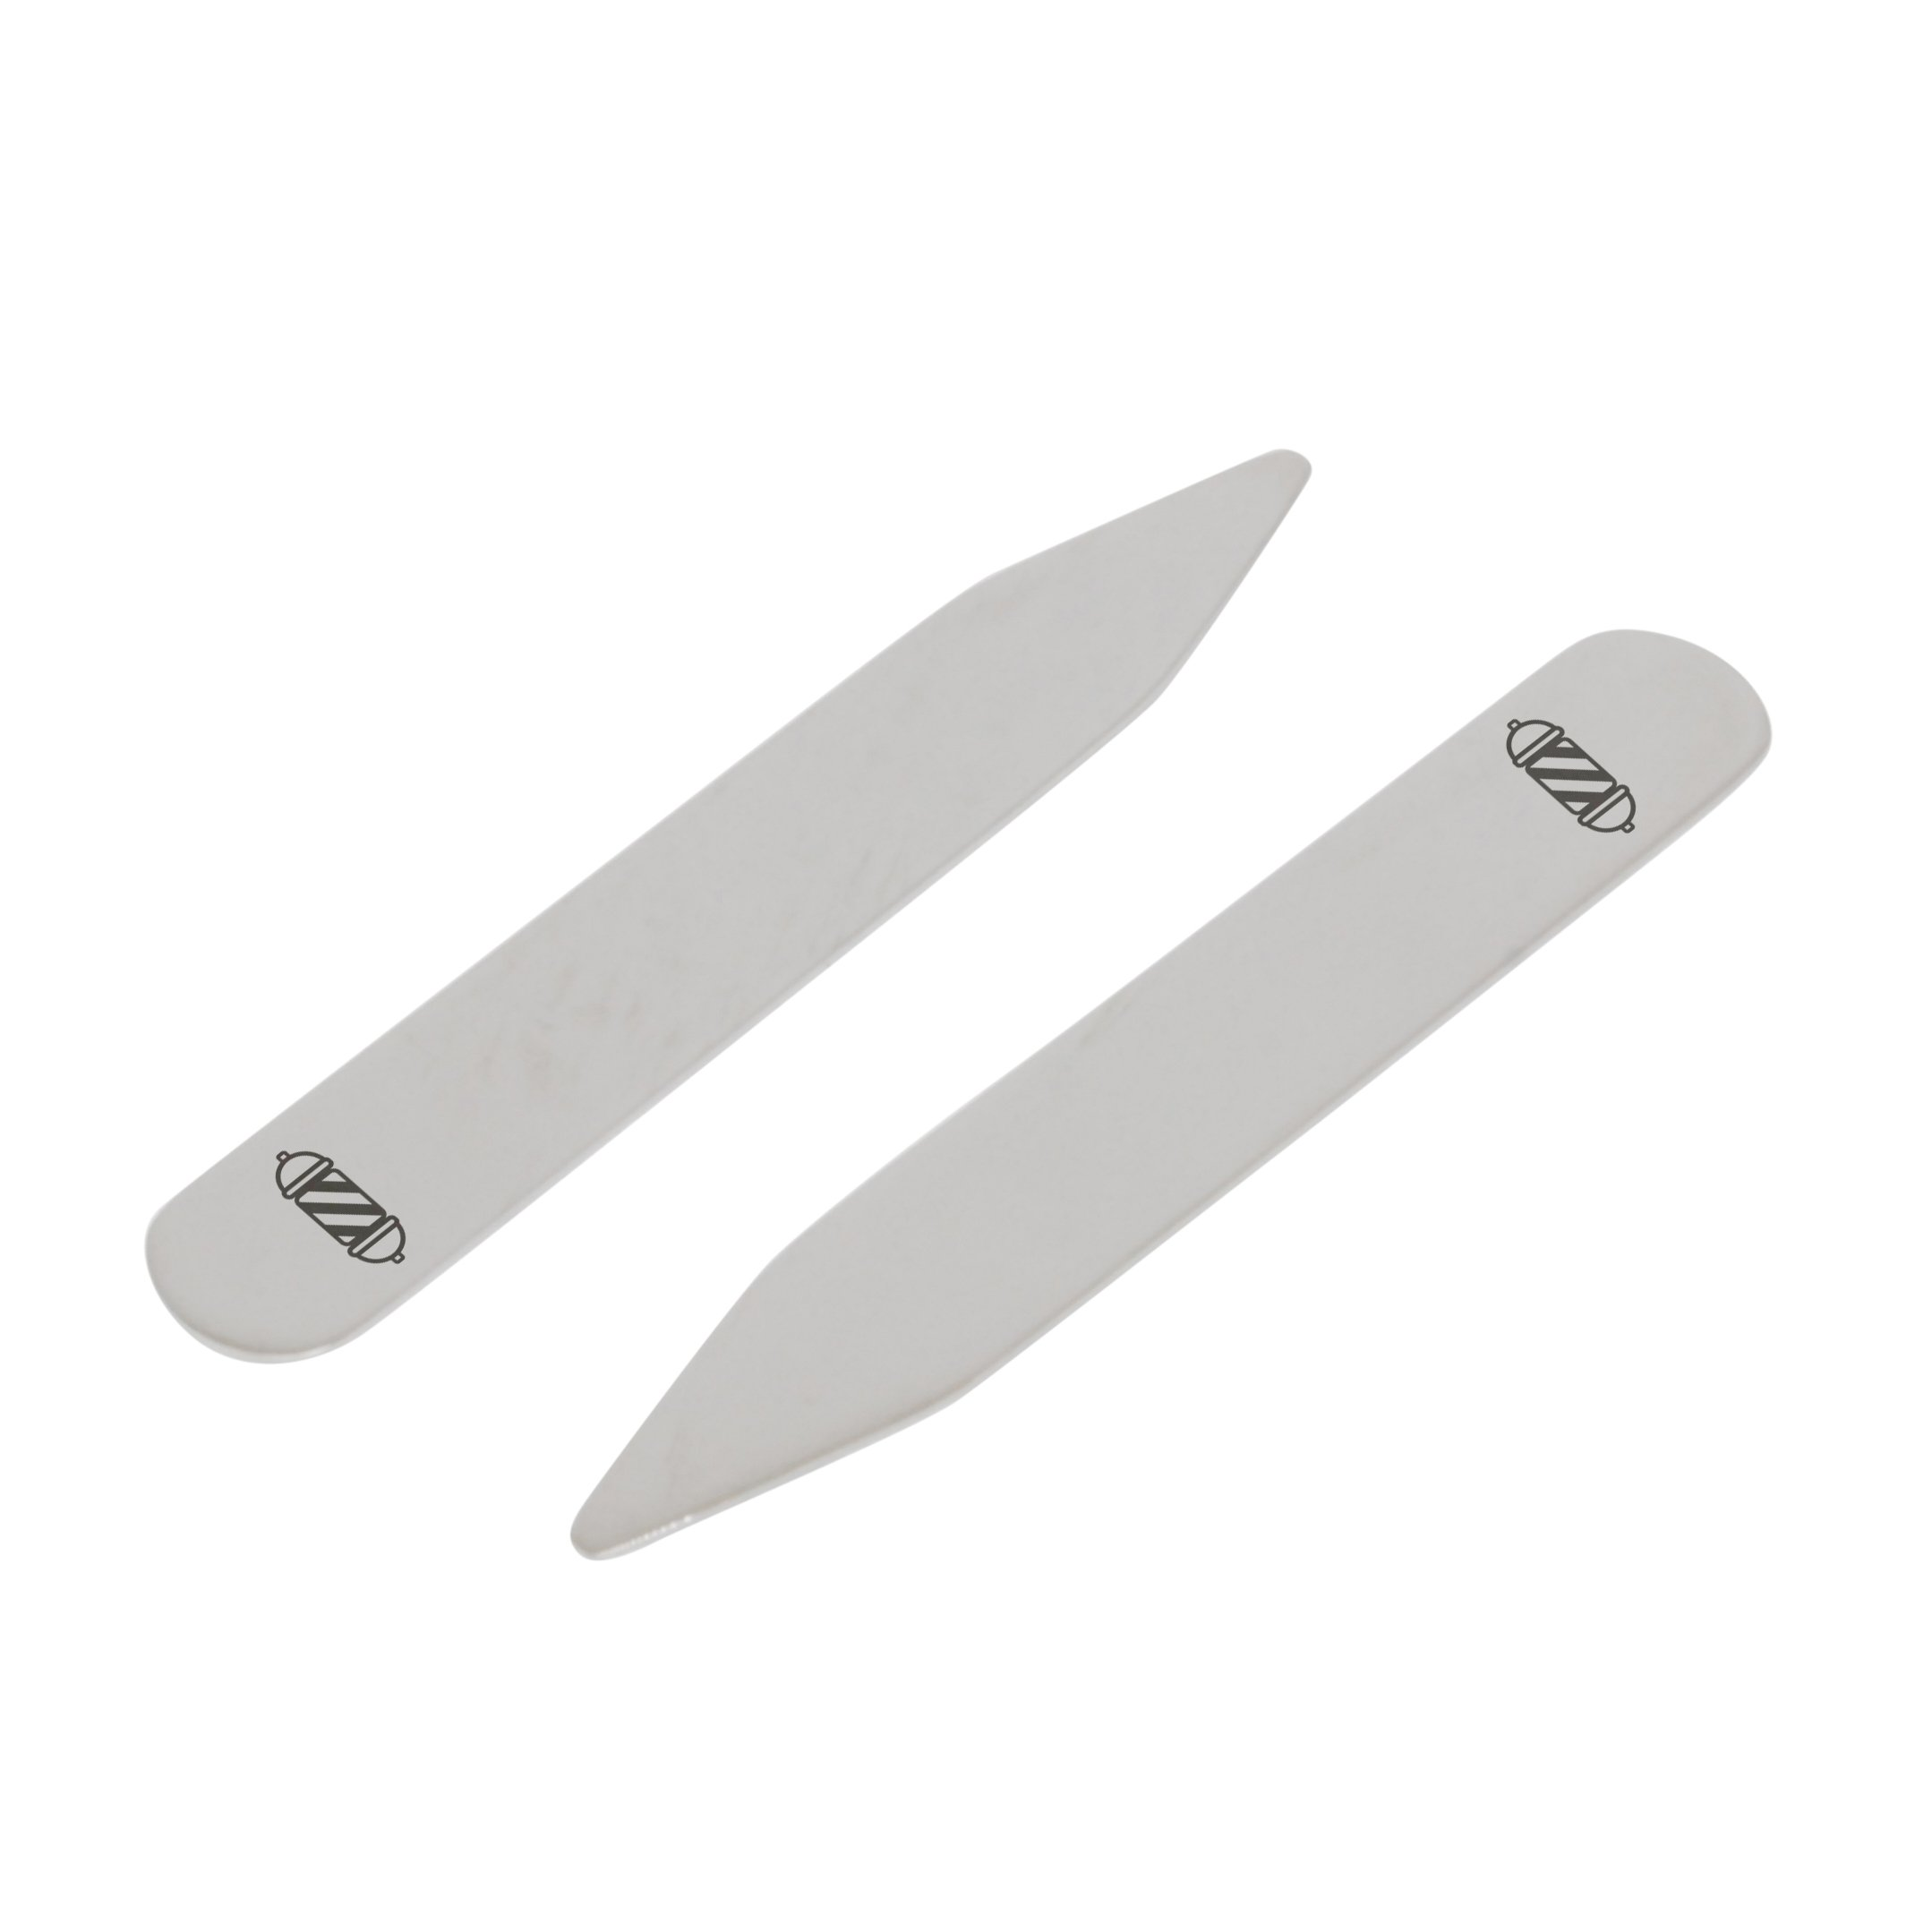 MODERN GOODS SHOP Stainless Steel Collar Stays With Laser Engraved Barber Pole Design - 2.5 Inch Metal Collar Stiffeners - Made In USA